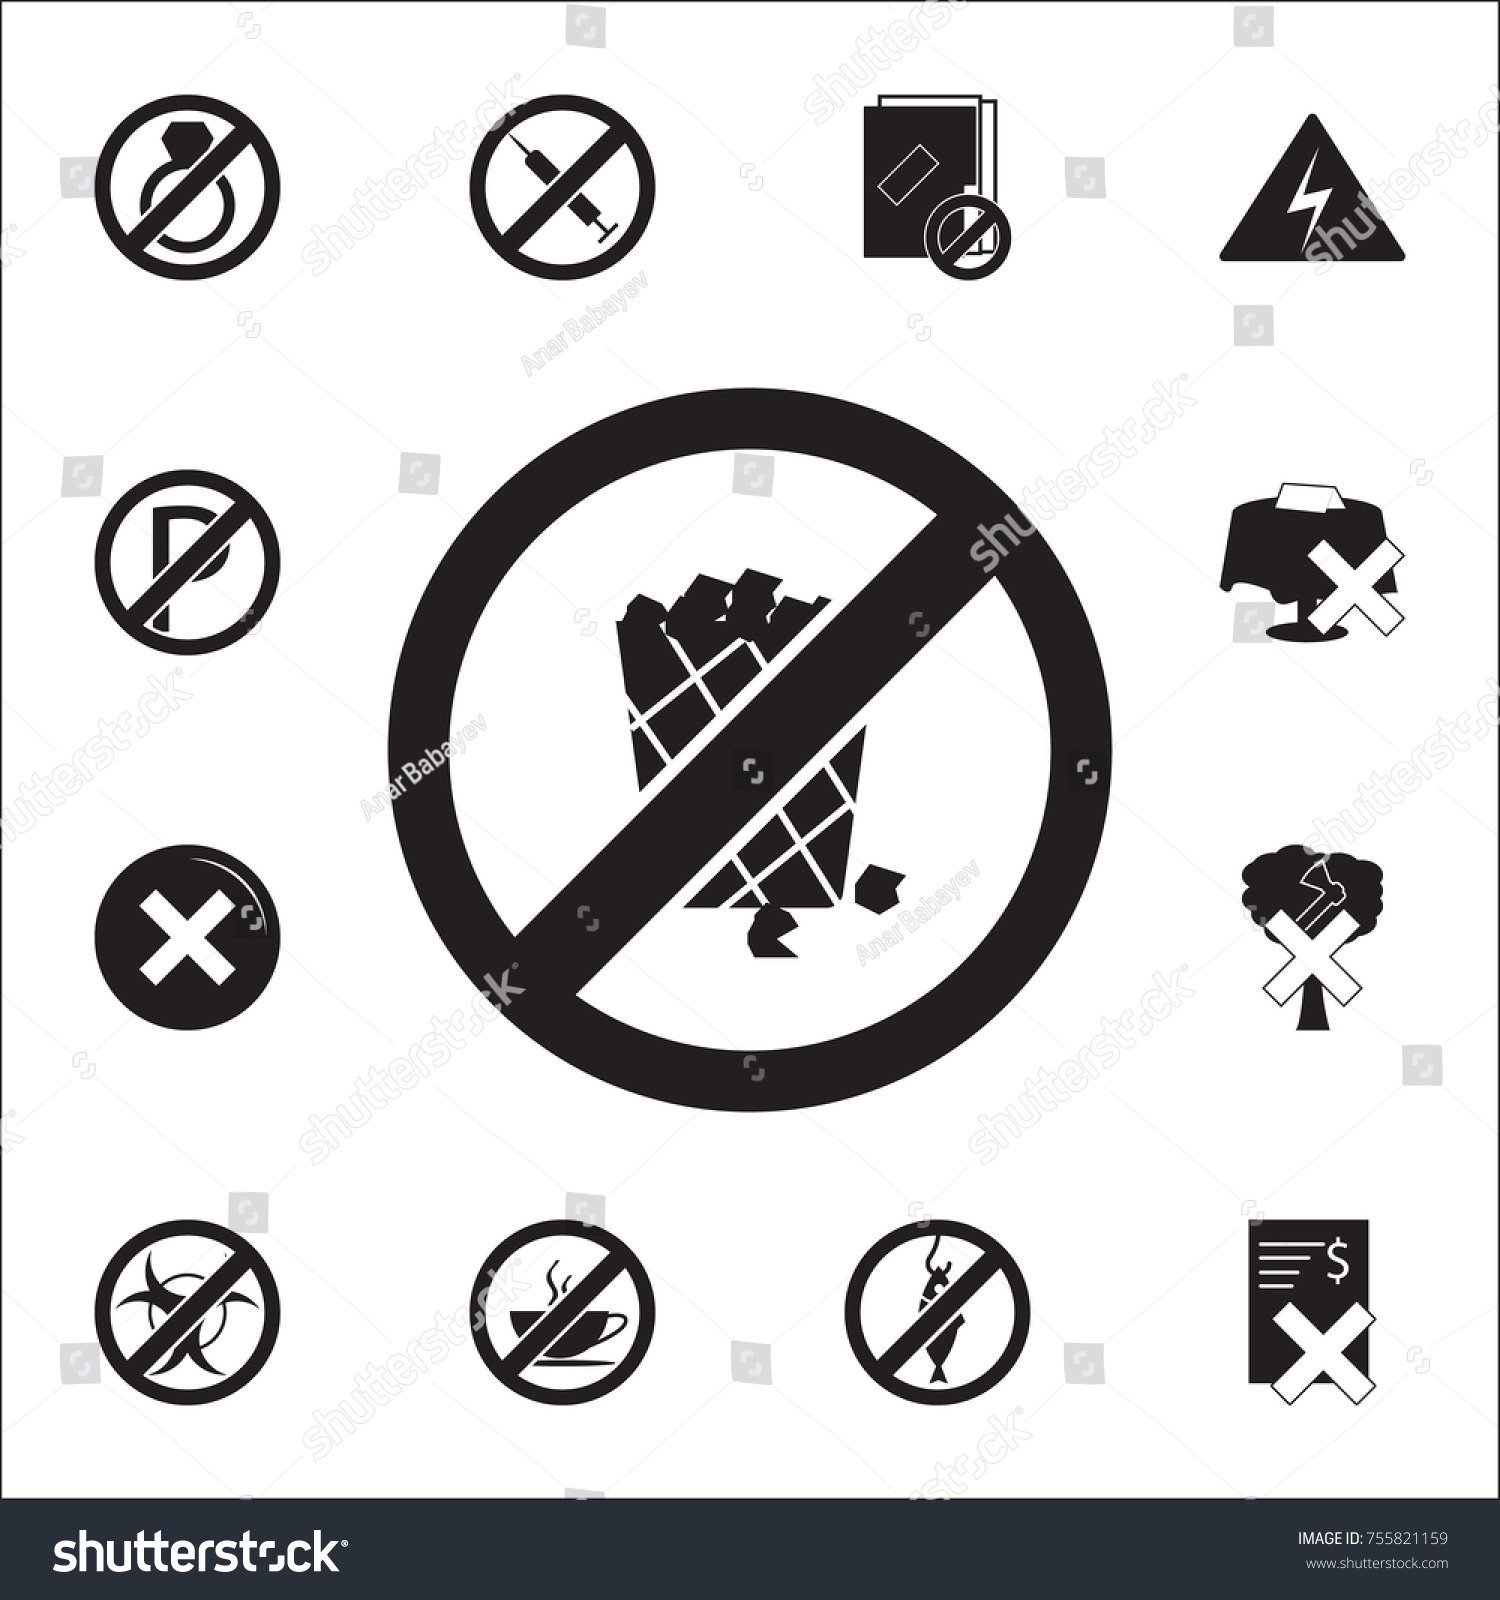 No Trash Bin Prohibited Sign Icon Stock Vector Royalty Free